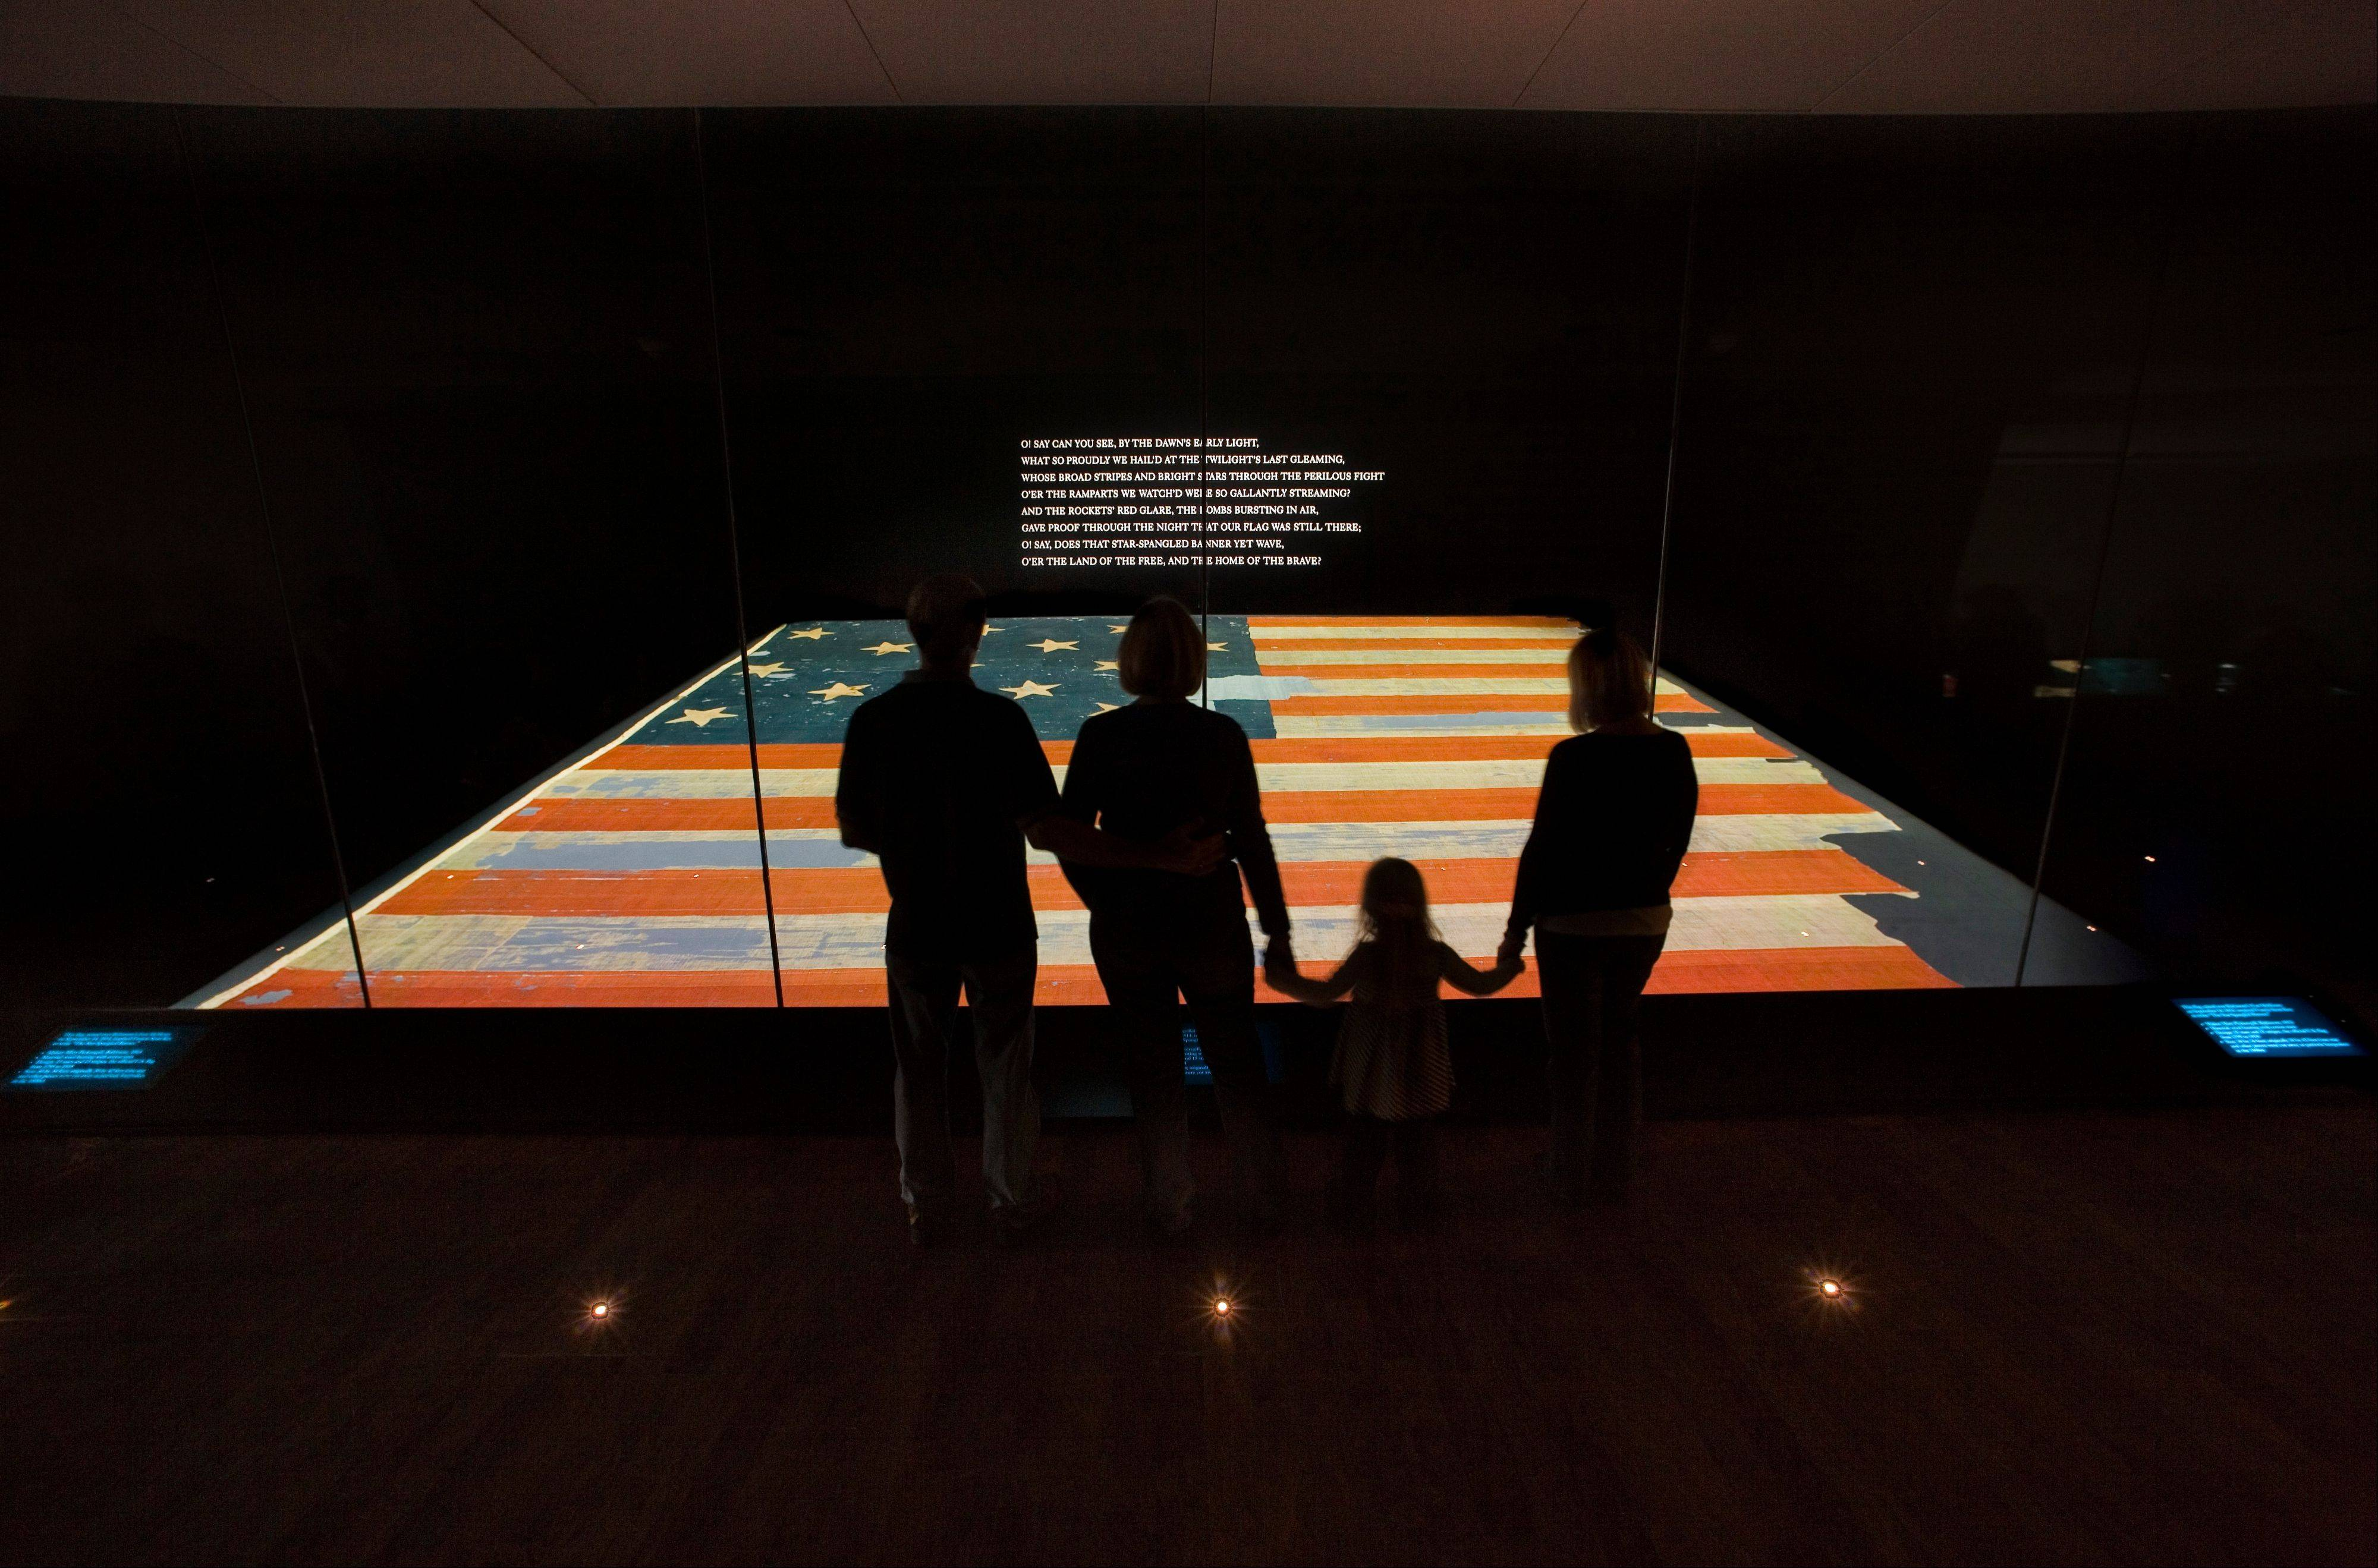 This handout photo provided by the Smithsonian Institution, taken in Nov. 2008, shows a family viewing the Star Spangled Banner at the Smithsonian's National Museum of American History in Washington.